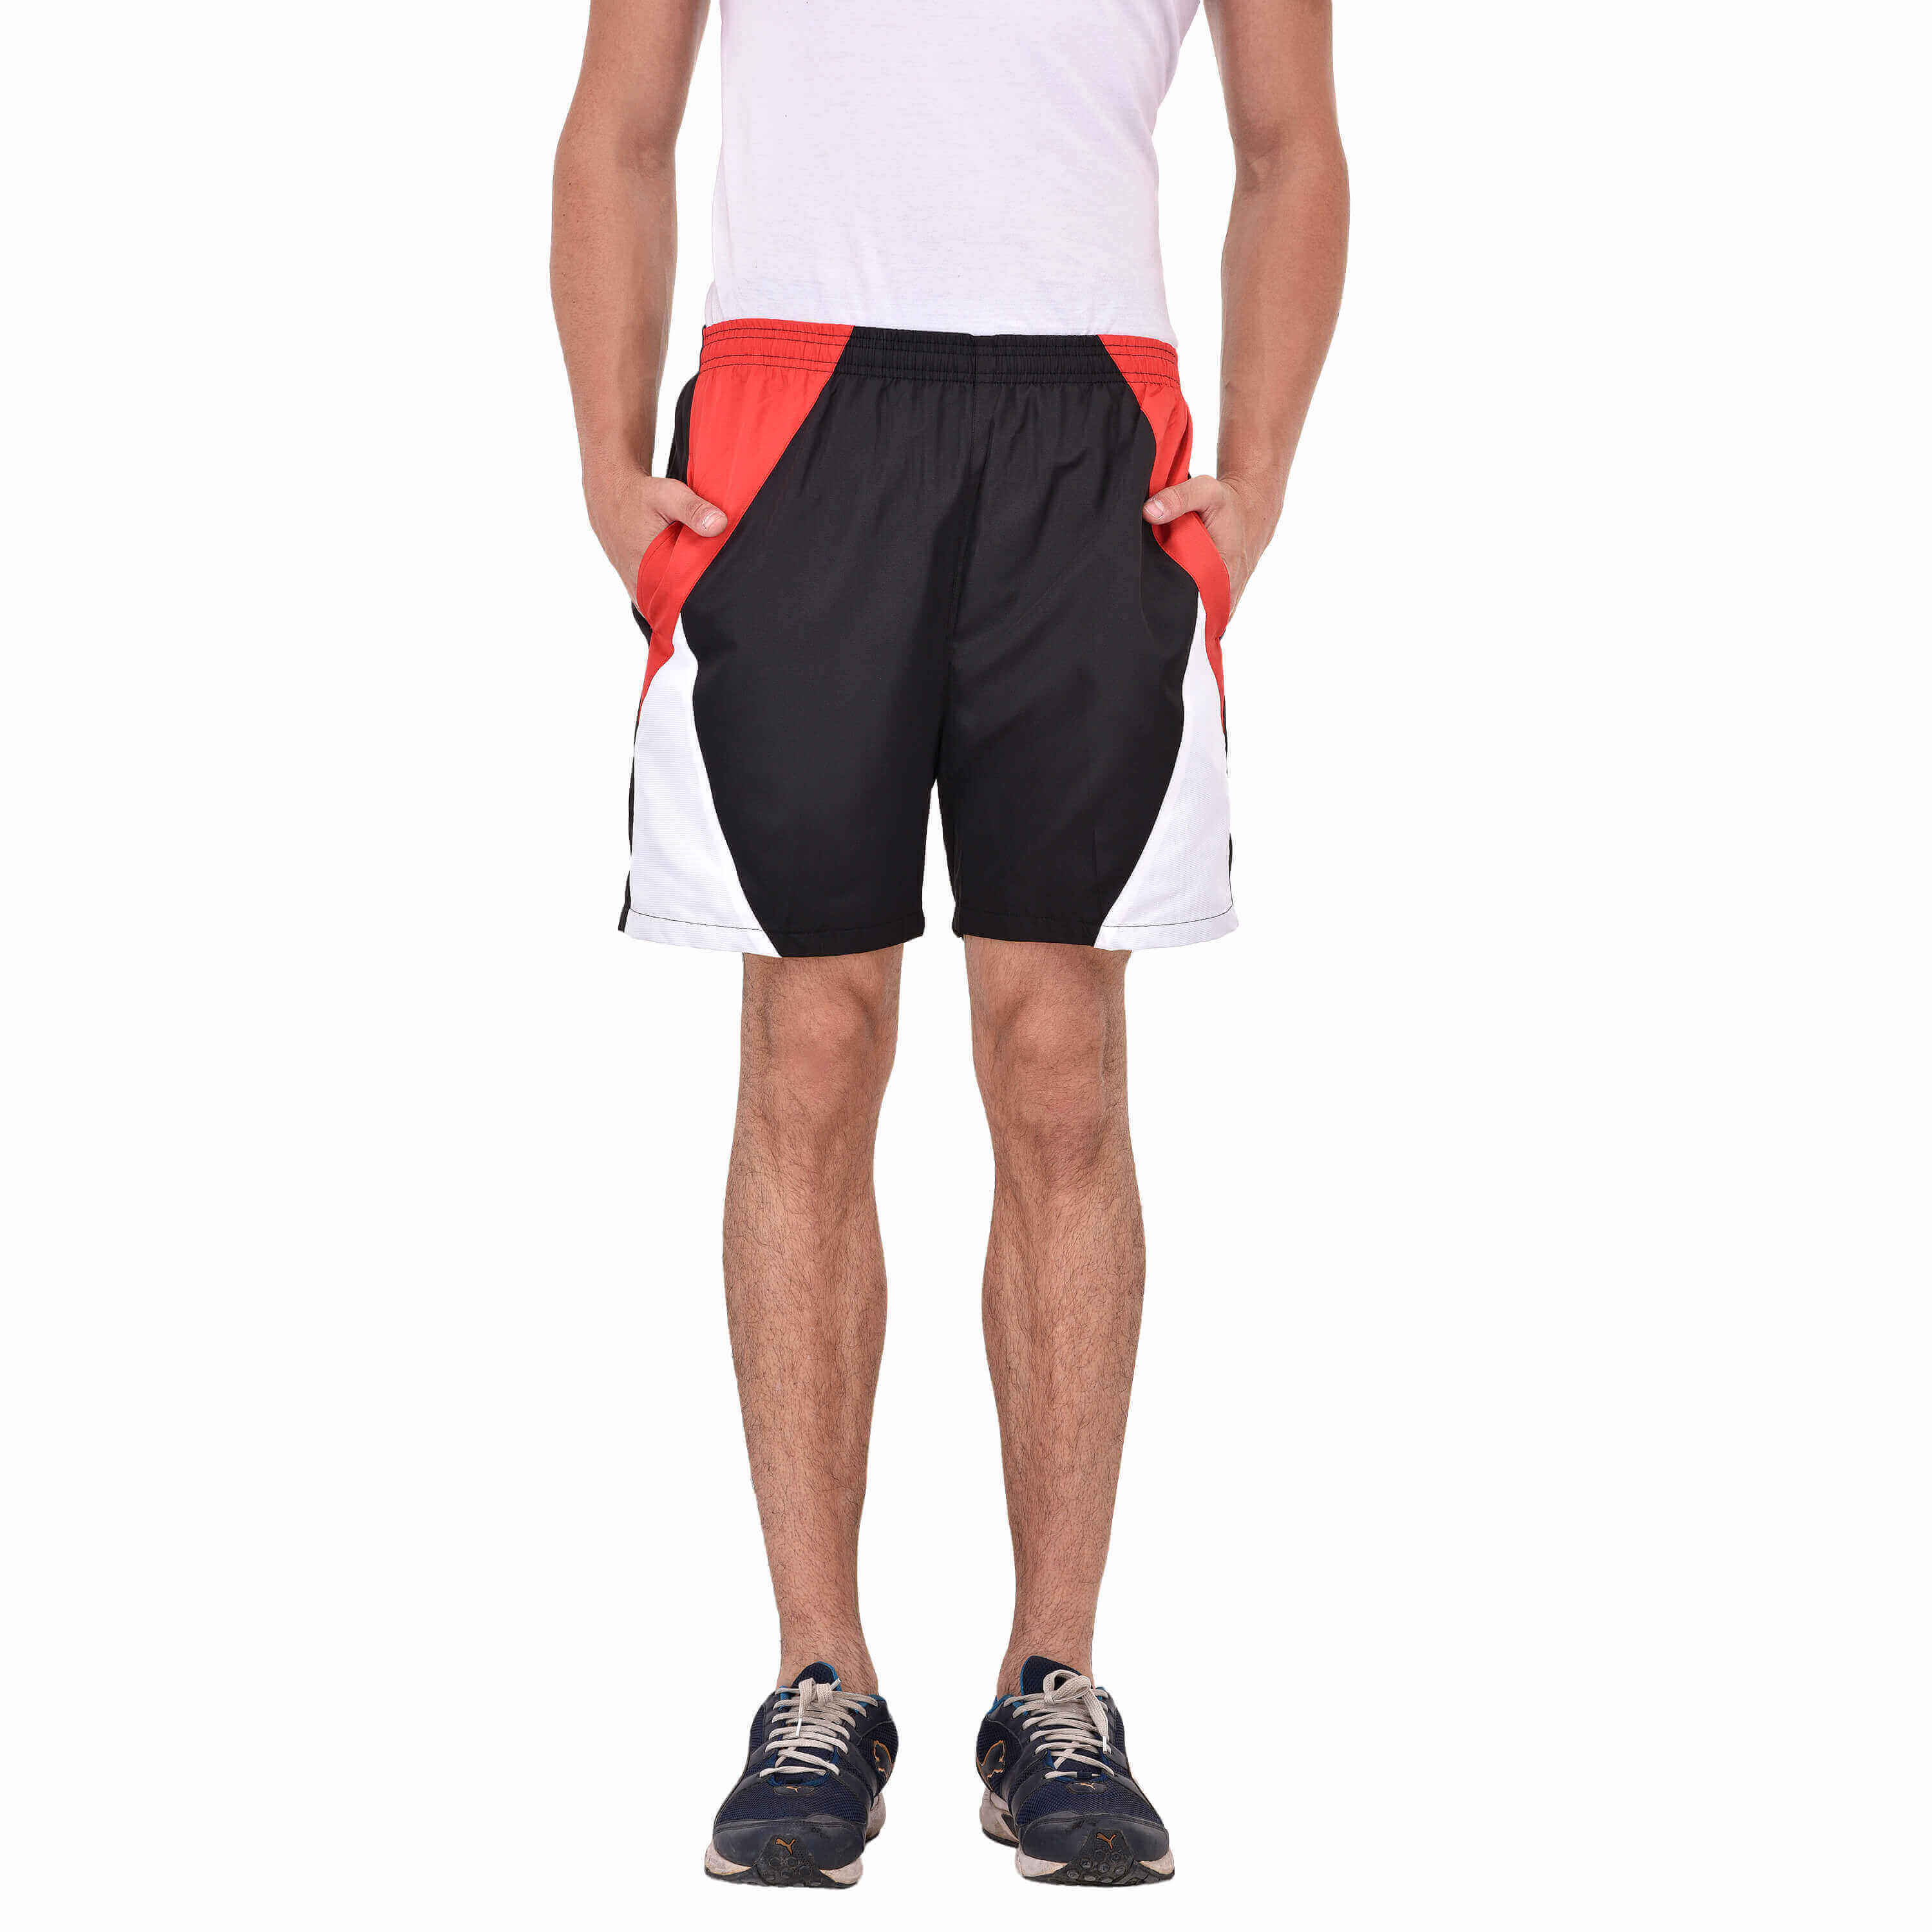 Soccer Shorts Manufacturers in Pune